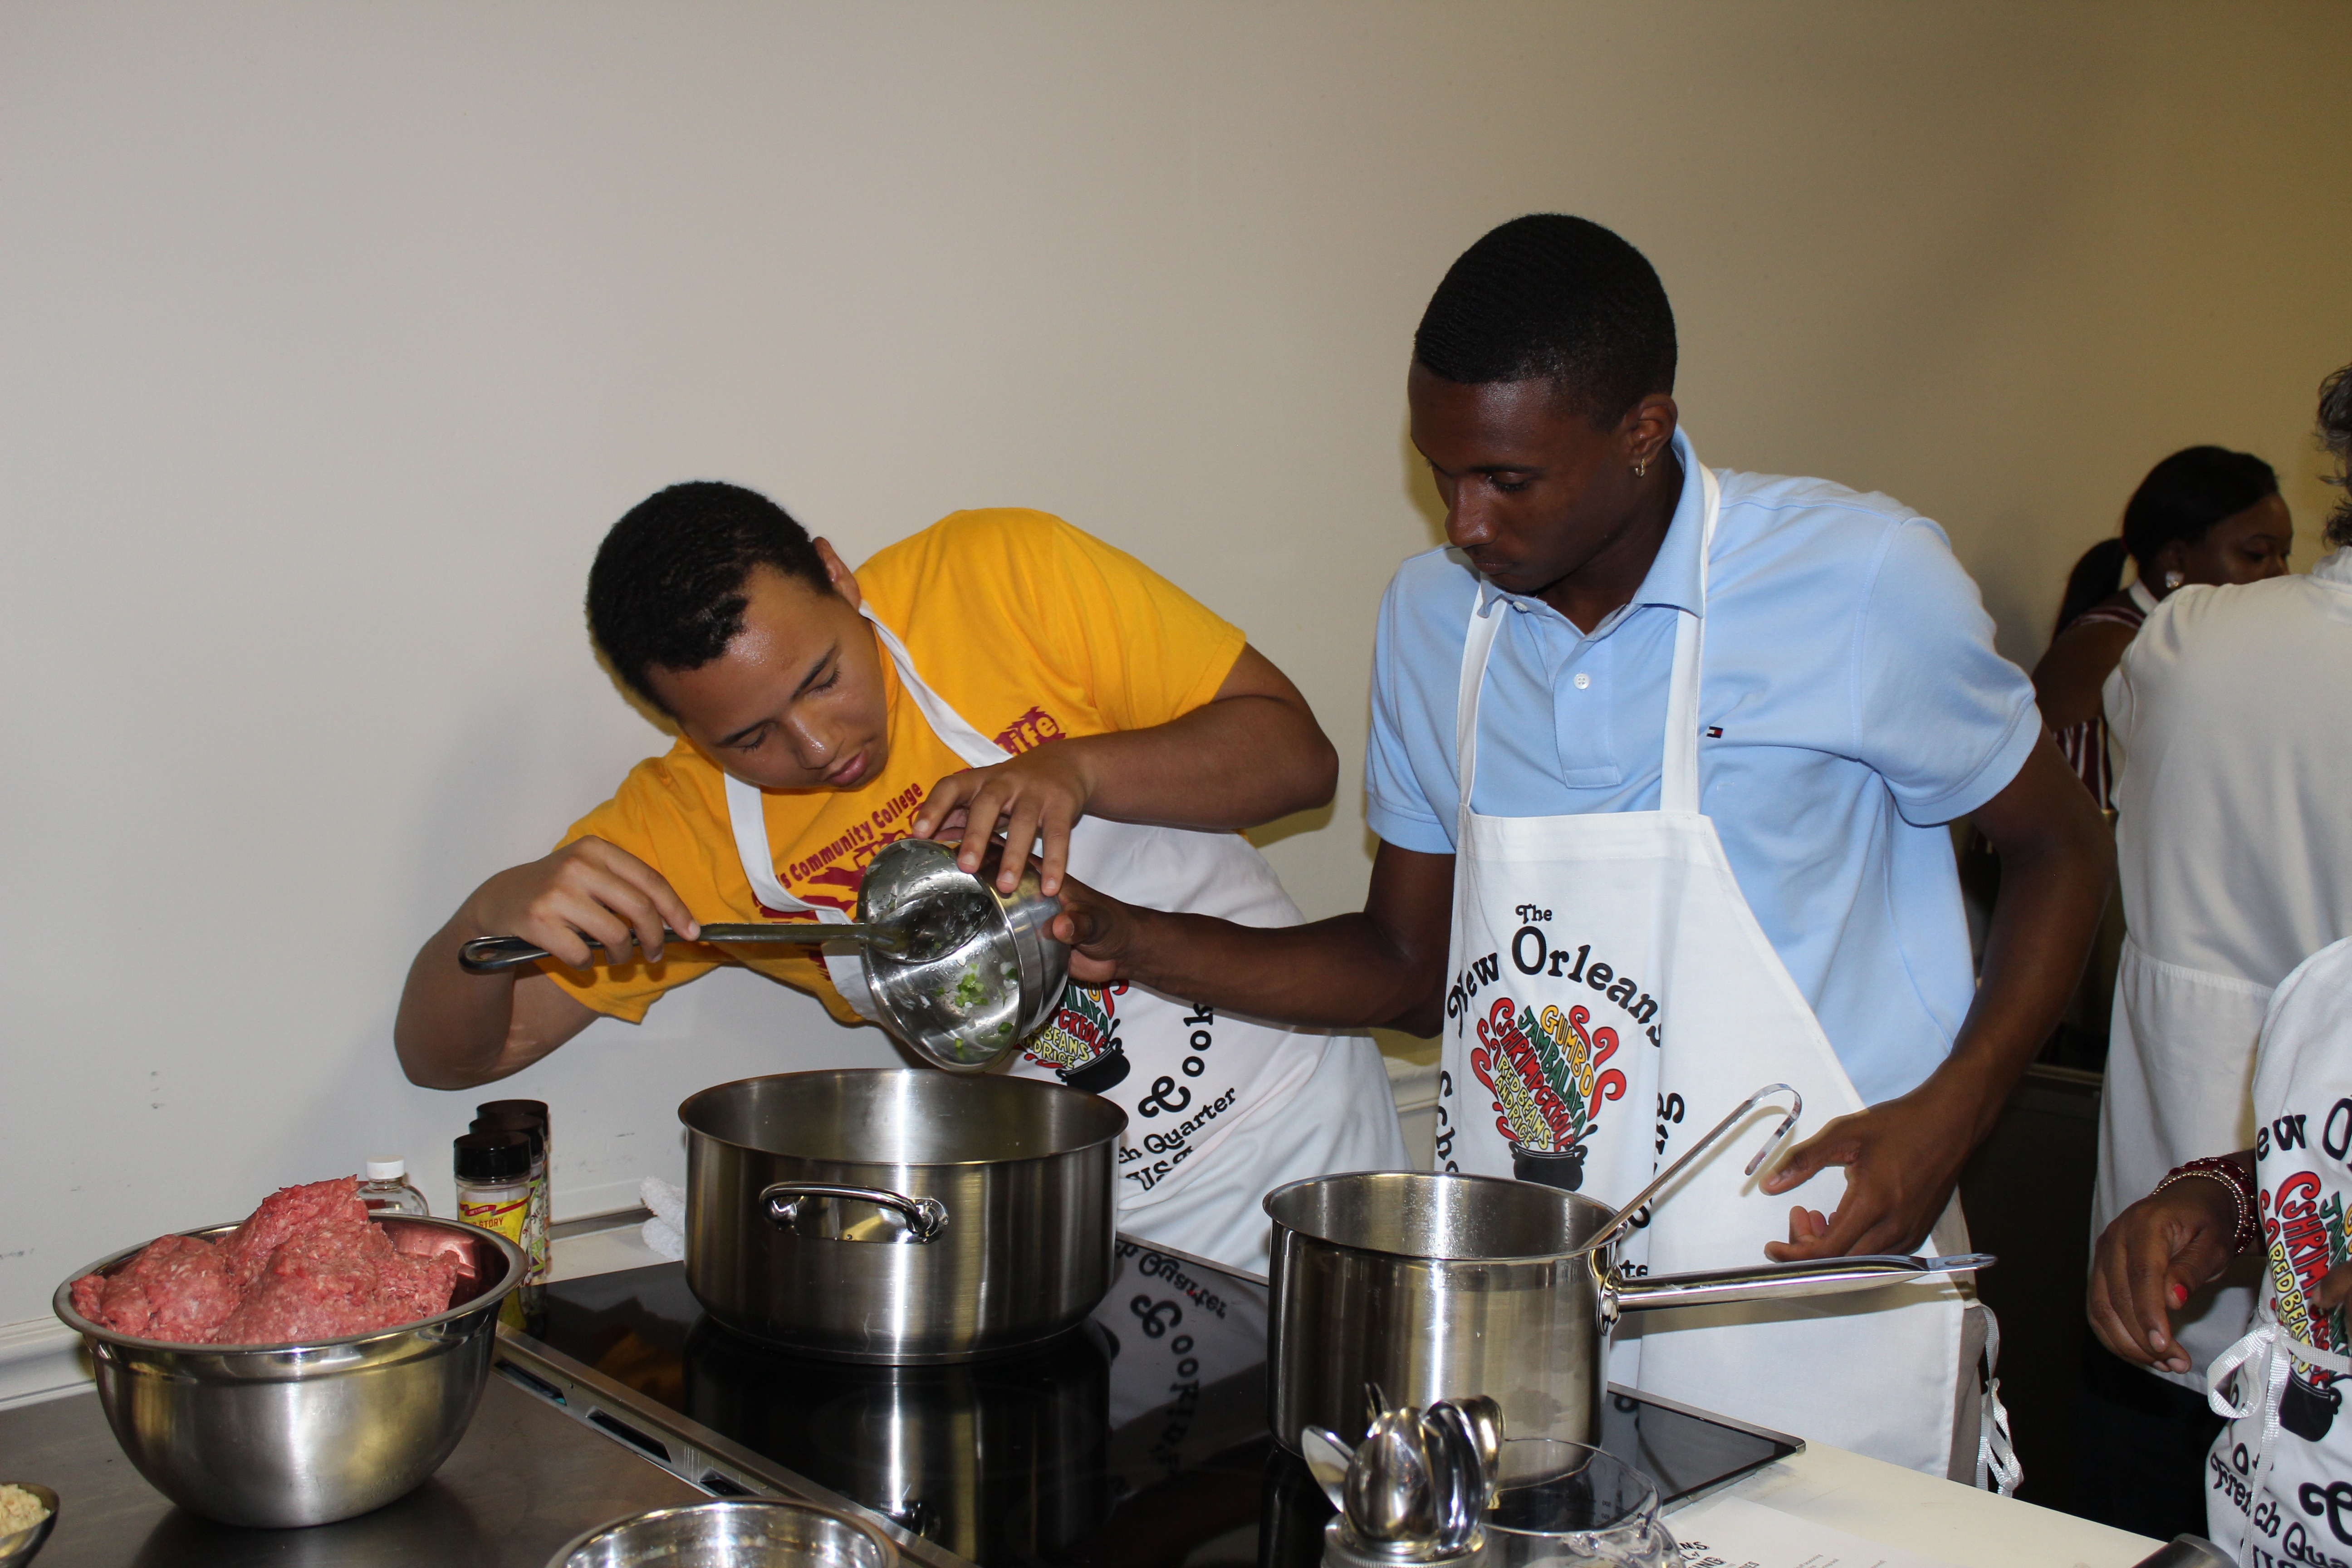 SSS Cookin Up Creols Flavors in New Orleans 2211.jpg